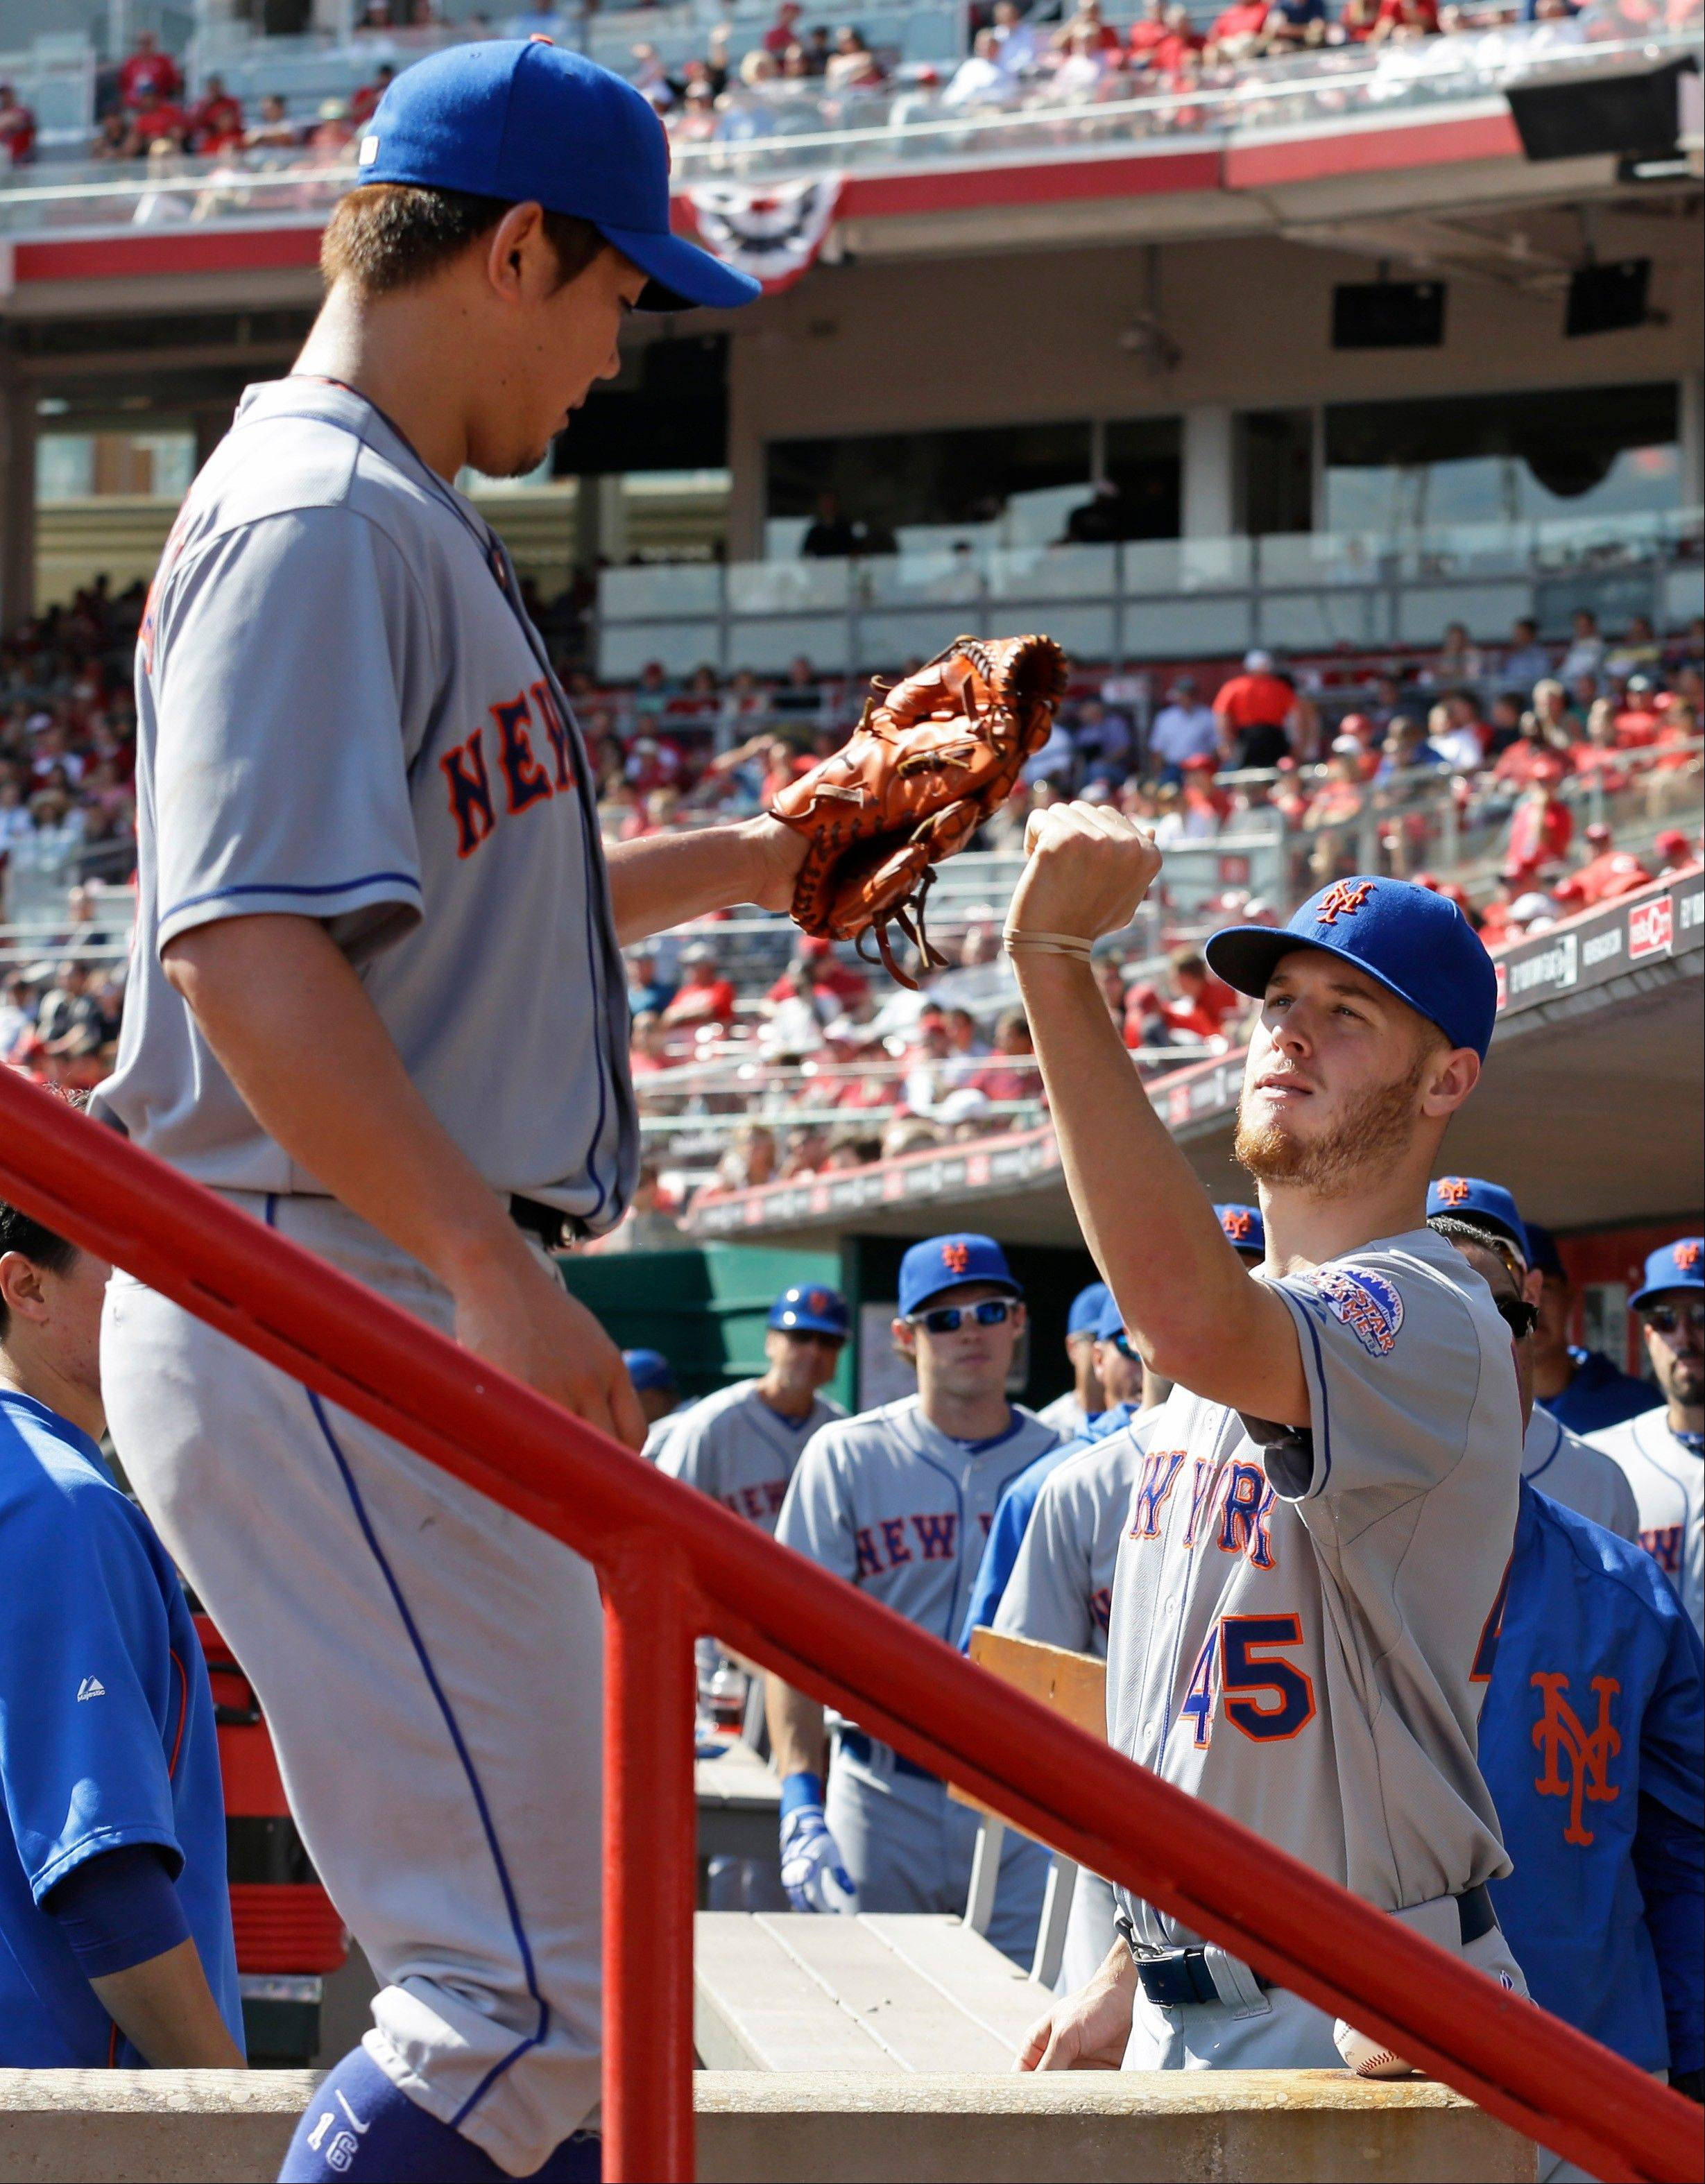 New York Mets starting pitcher Daisuke Matsuzaka is congratulated by Zack Wheeler (45) after Matsuzaka was taken out in the eighth inning of a baseball game against the Cincinnati Reds, Wednesday in Cincinnati. Matsuzaka was the winning pitcher in the game won by New York 1-0.